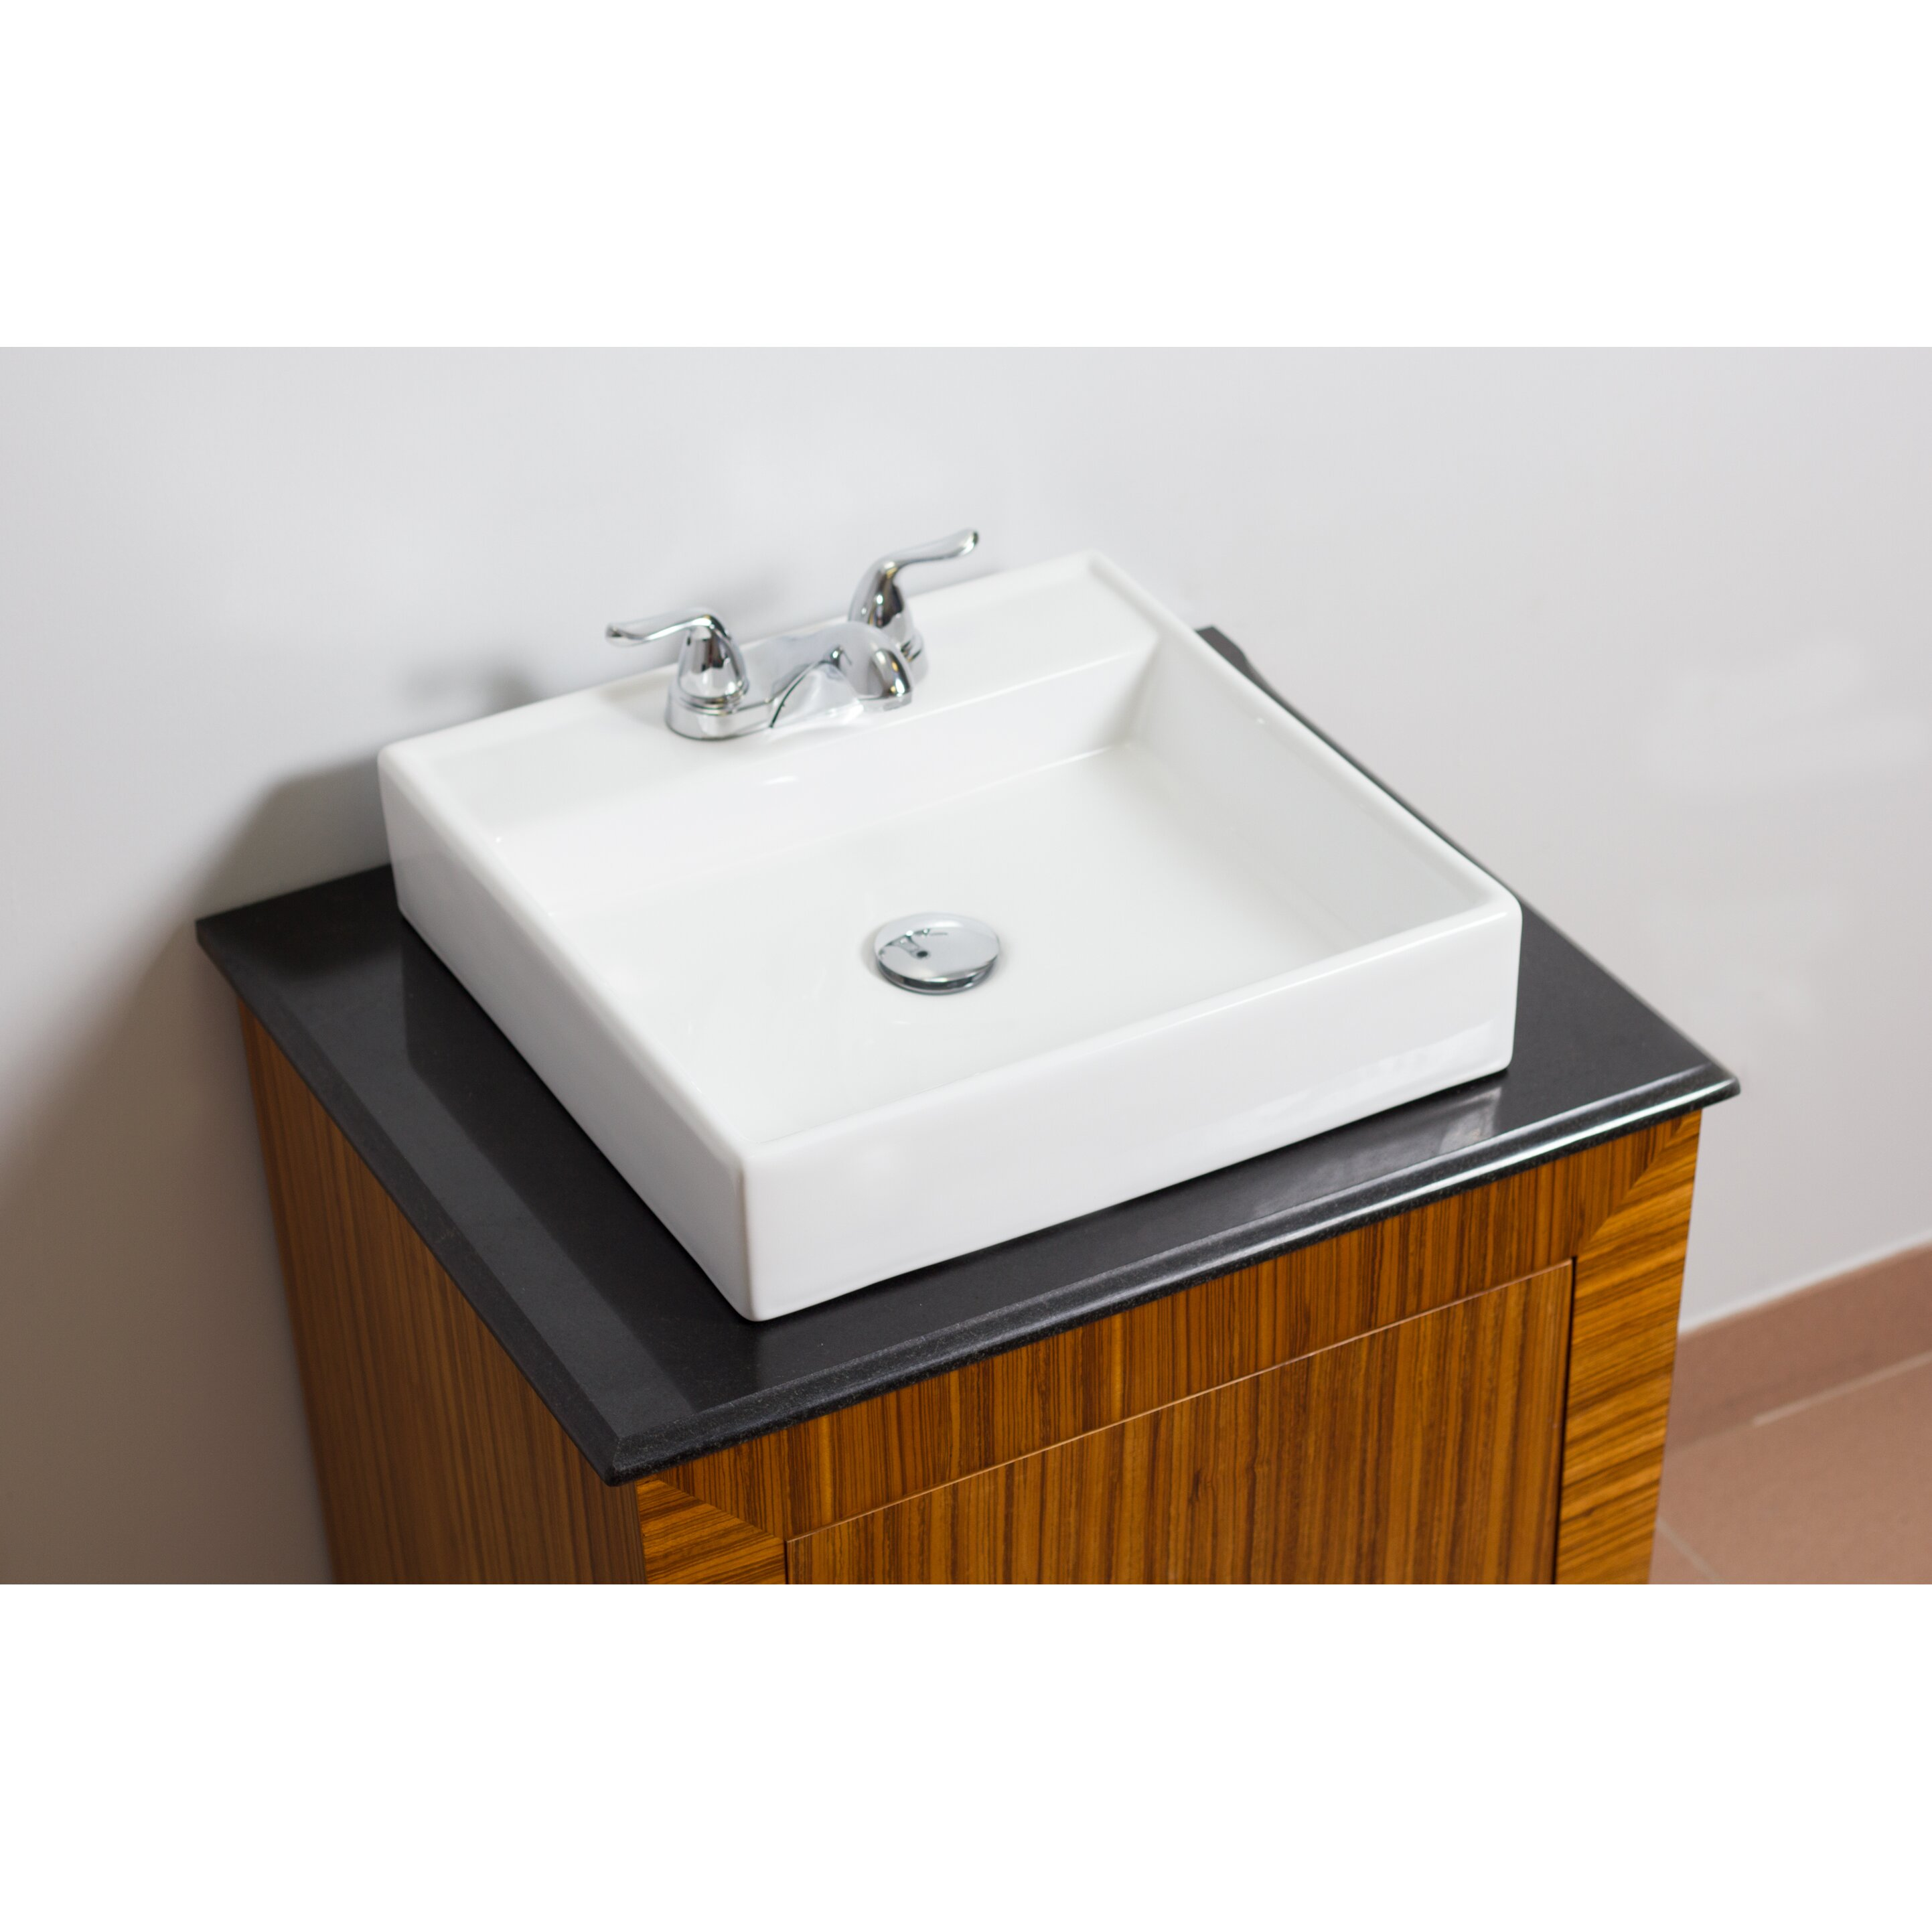 Sink Attached To Wall : Wall Mounted Square Vessel Bathroom Sink by American Imaginations